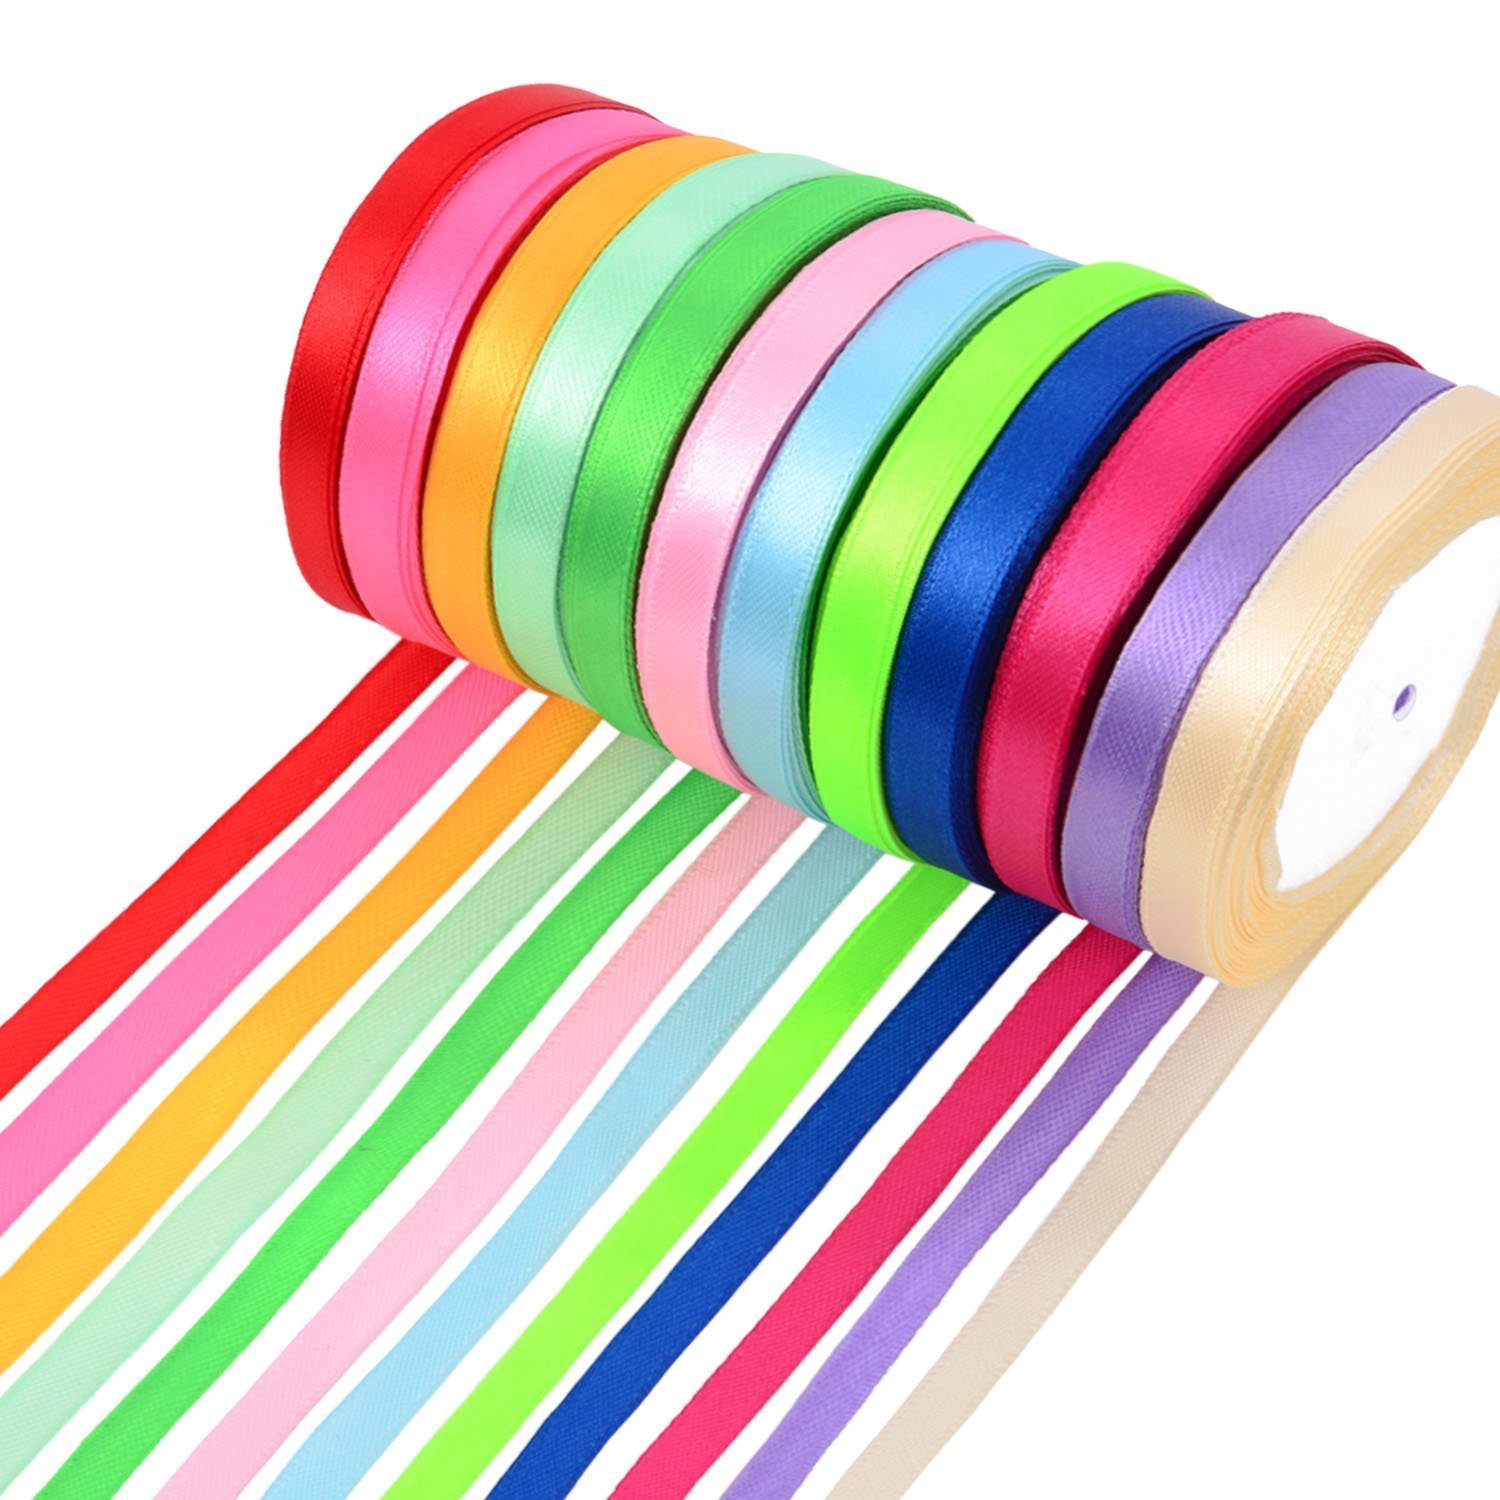 M-Aimee 300 Yards Double Sided Fabric Ribbon Silk Satin Roll, 12 Colors (10 mm Wide)